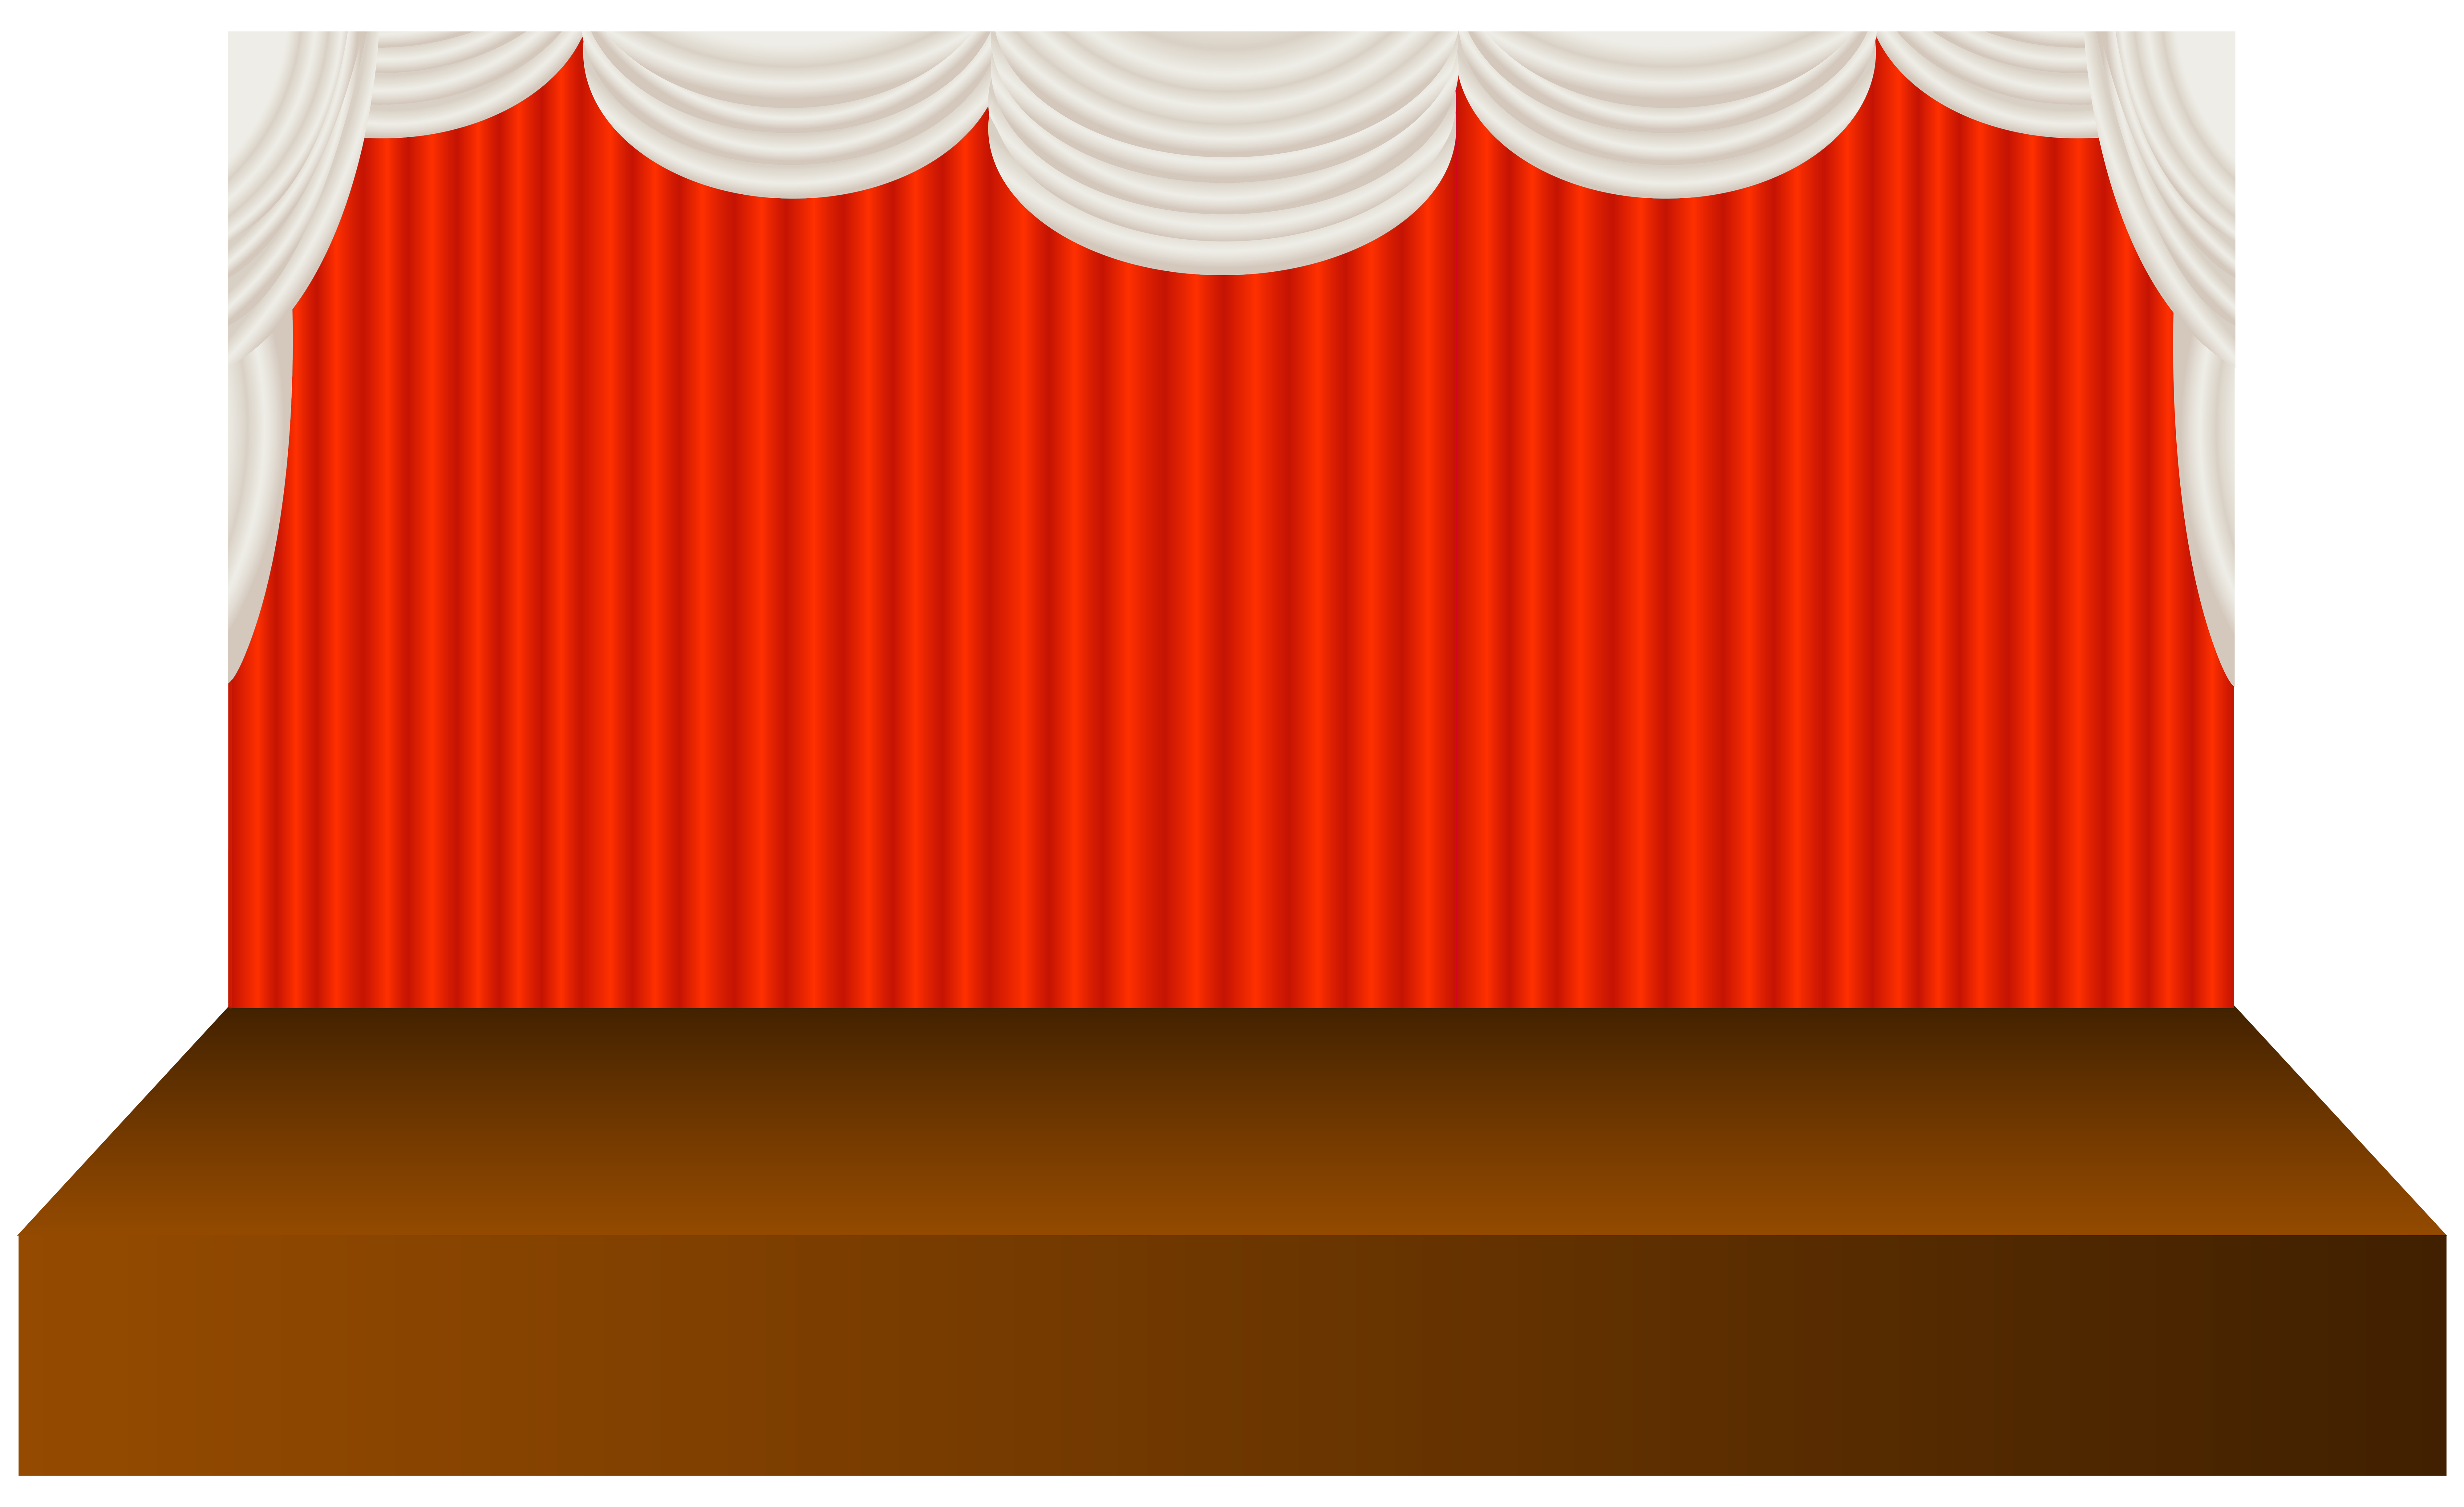 Stage star clipart banner free library Stage PNG Transparent Clip Art Image | Gallery Yopriceville - High ... banner free library